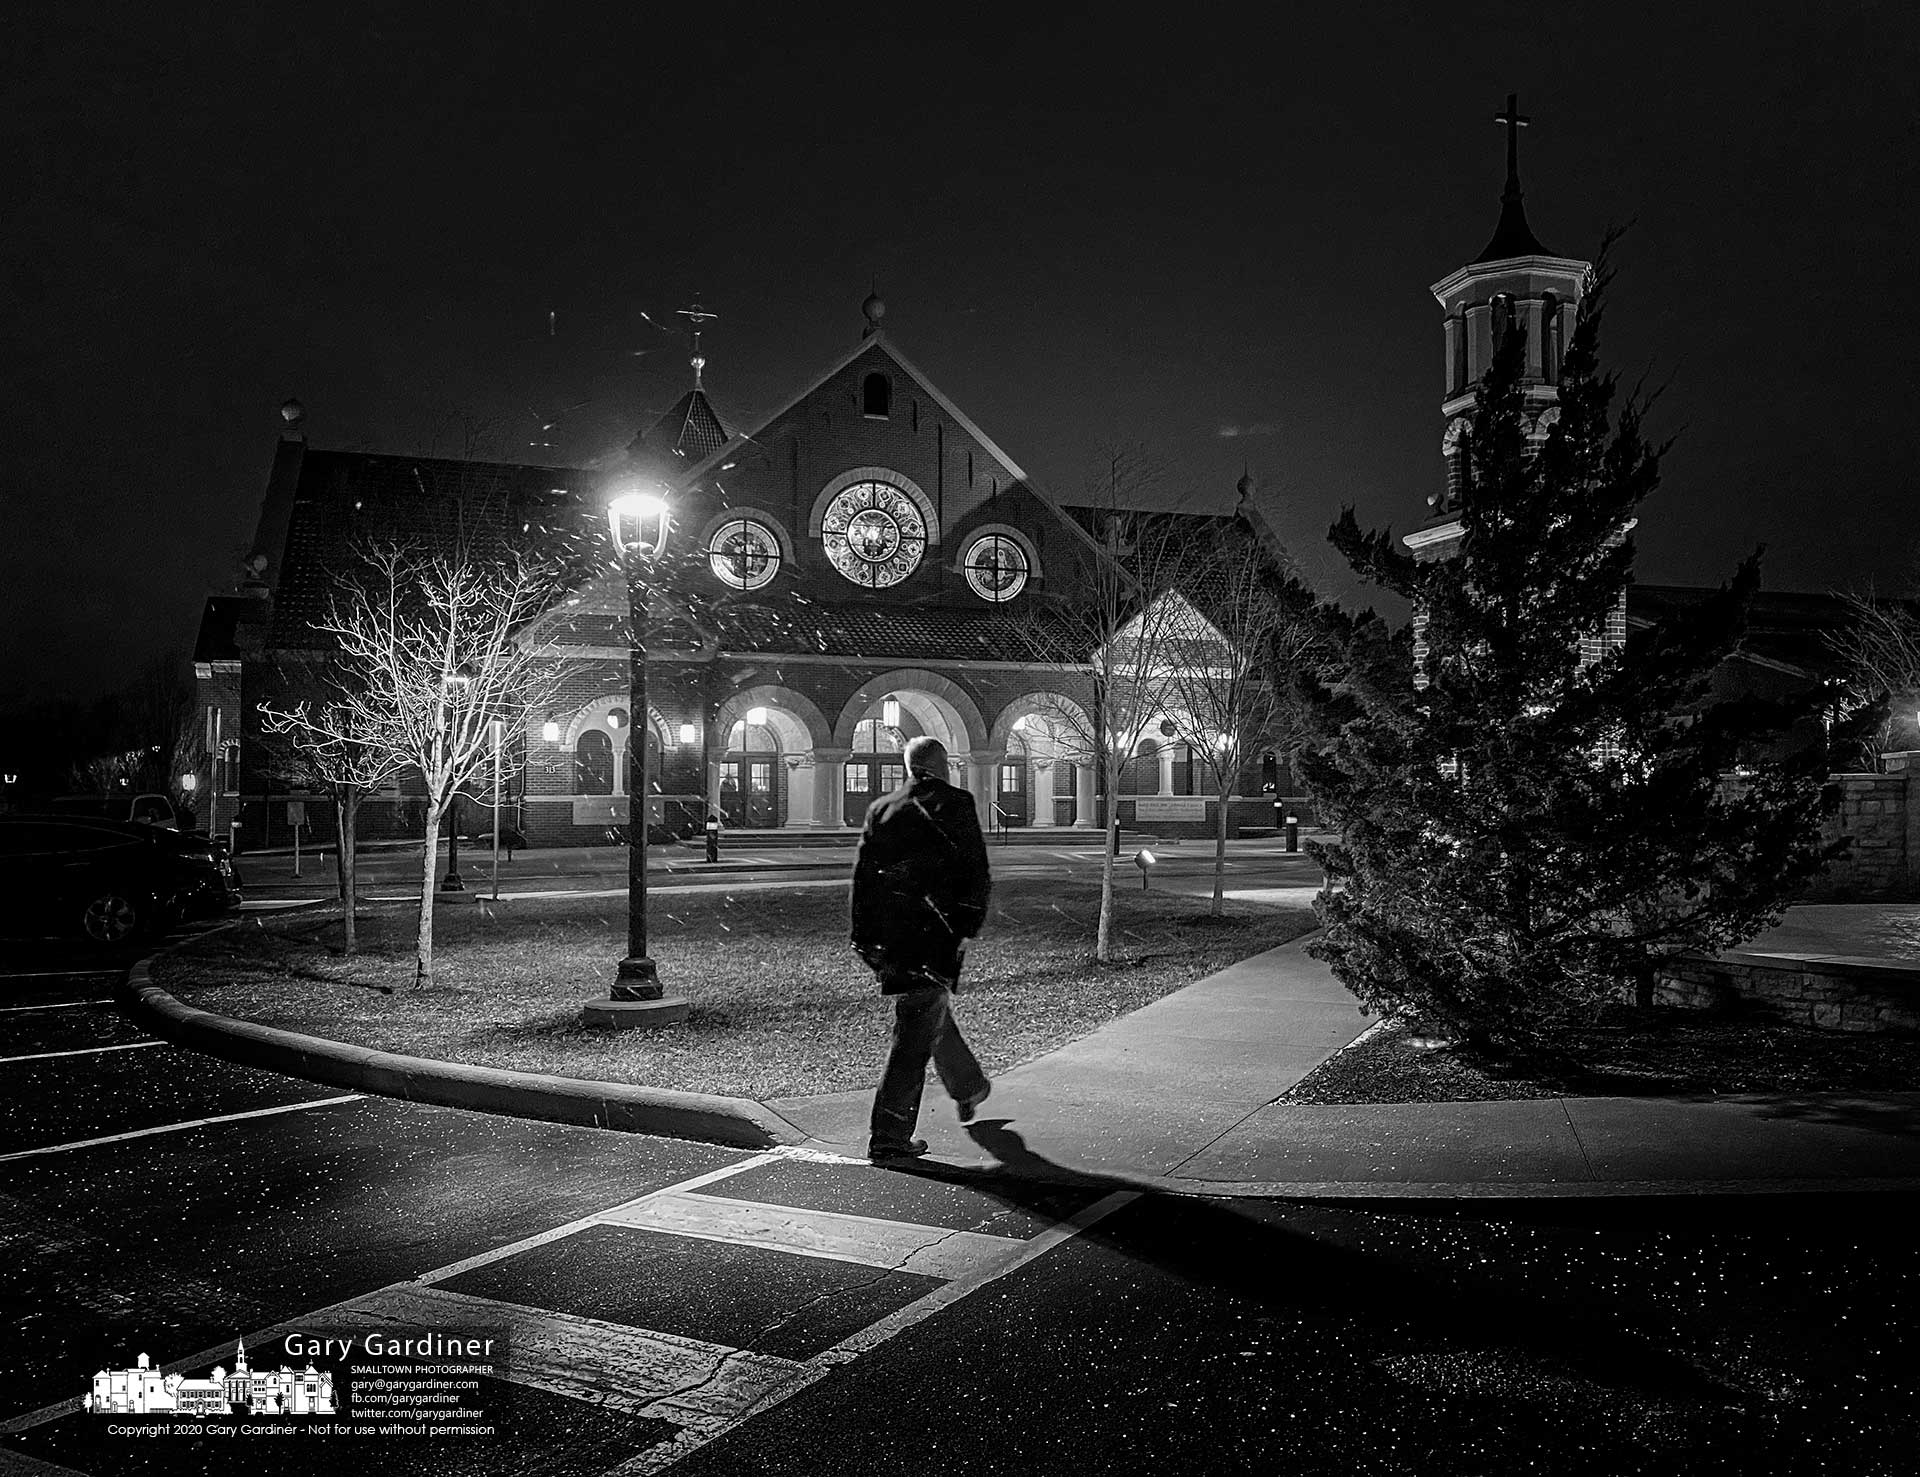 A parishioner walks toward St. Paul the Apostle Catholic Church as a stiff breeze wraps a snow squall around the church before the early morning Mass. My Final Photo for Jan. 19, 2020.